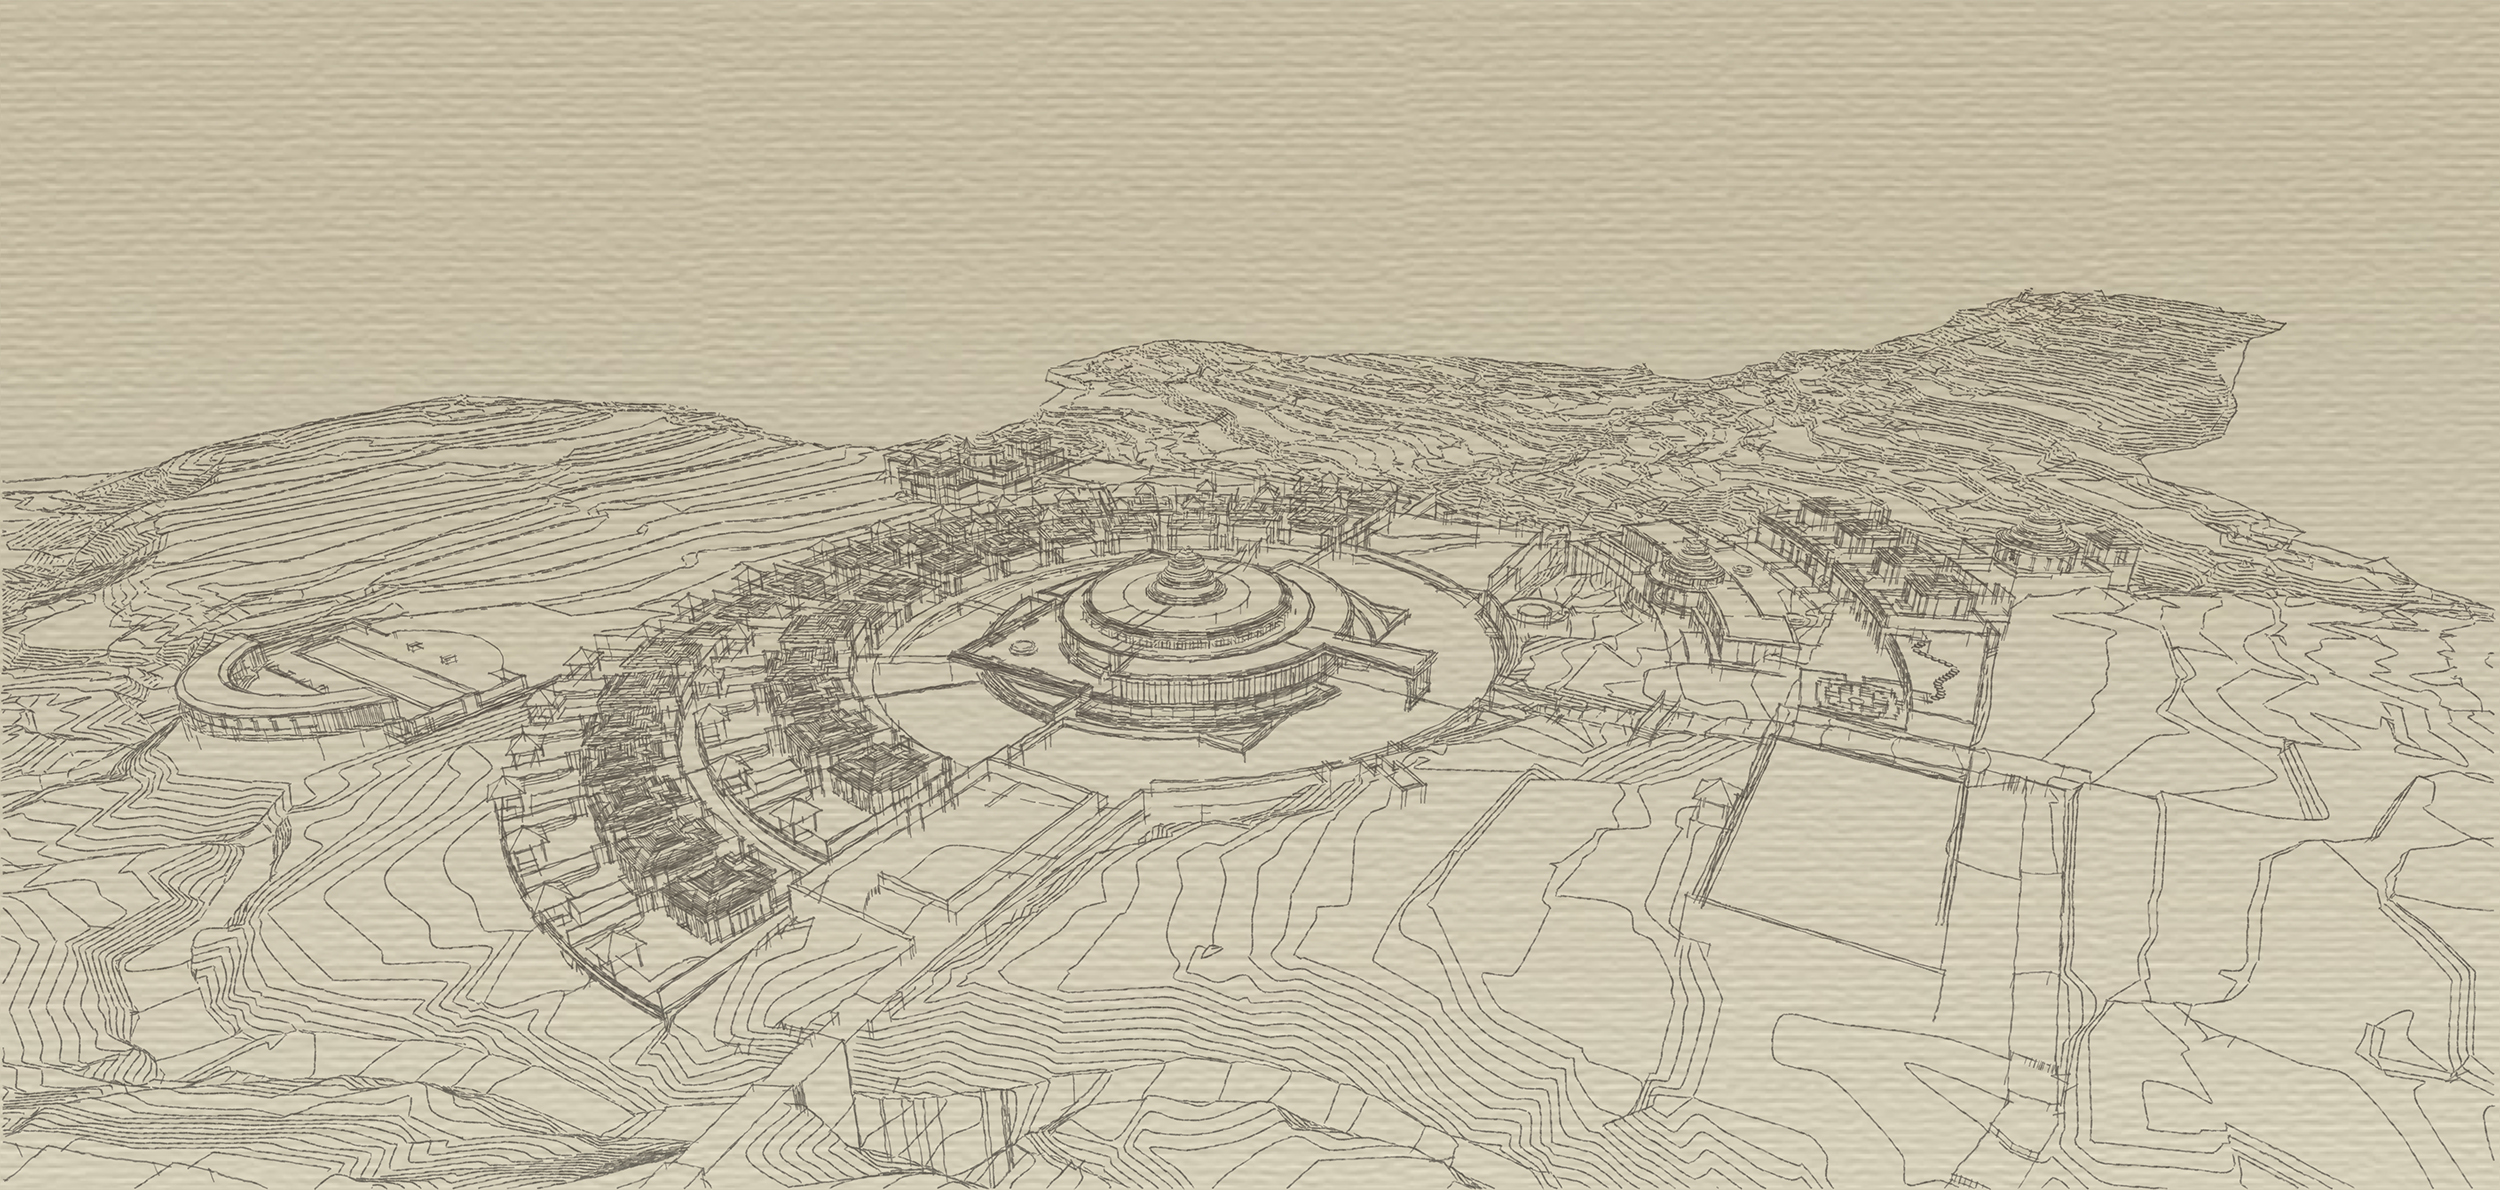 13_Overview from the center_sketchy lines.jpg